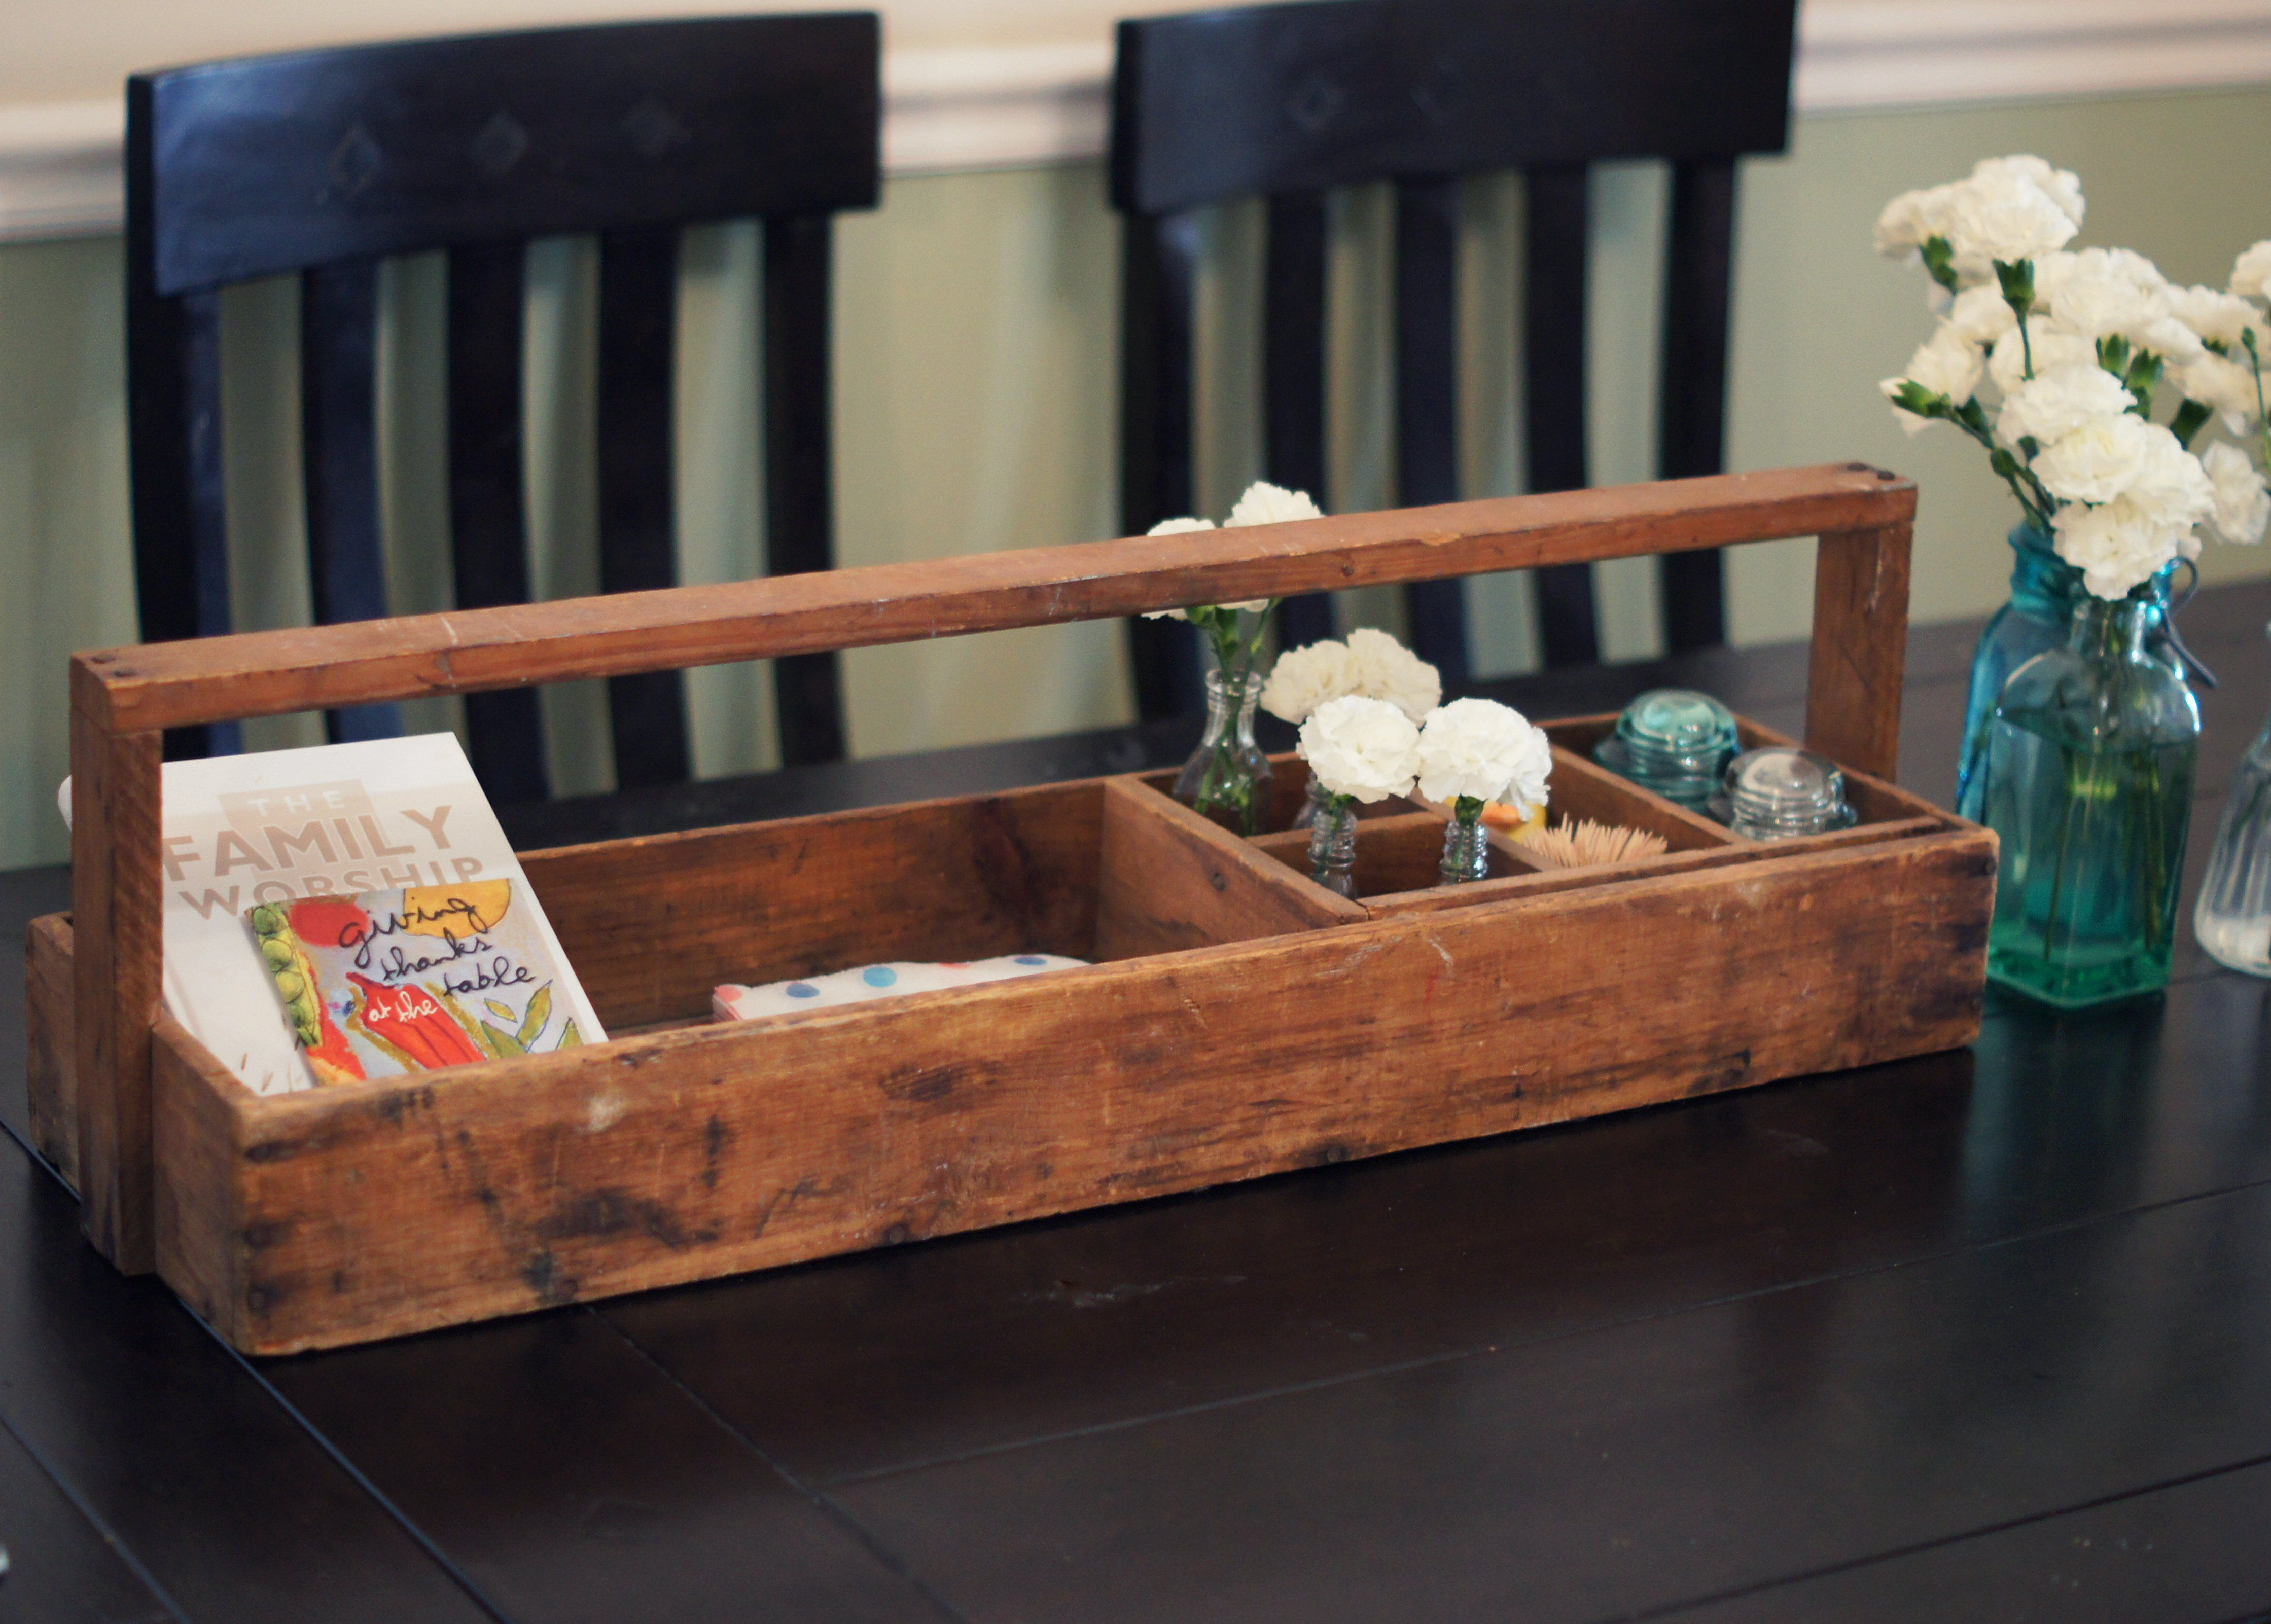 Vintage Wooden Tool Boxes | found this handmade antique wooden tool ...